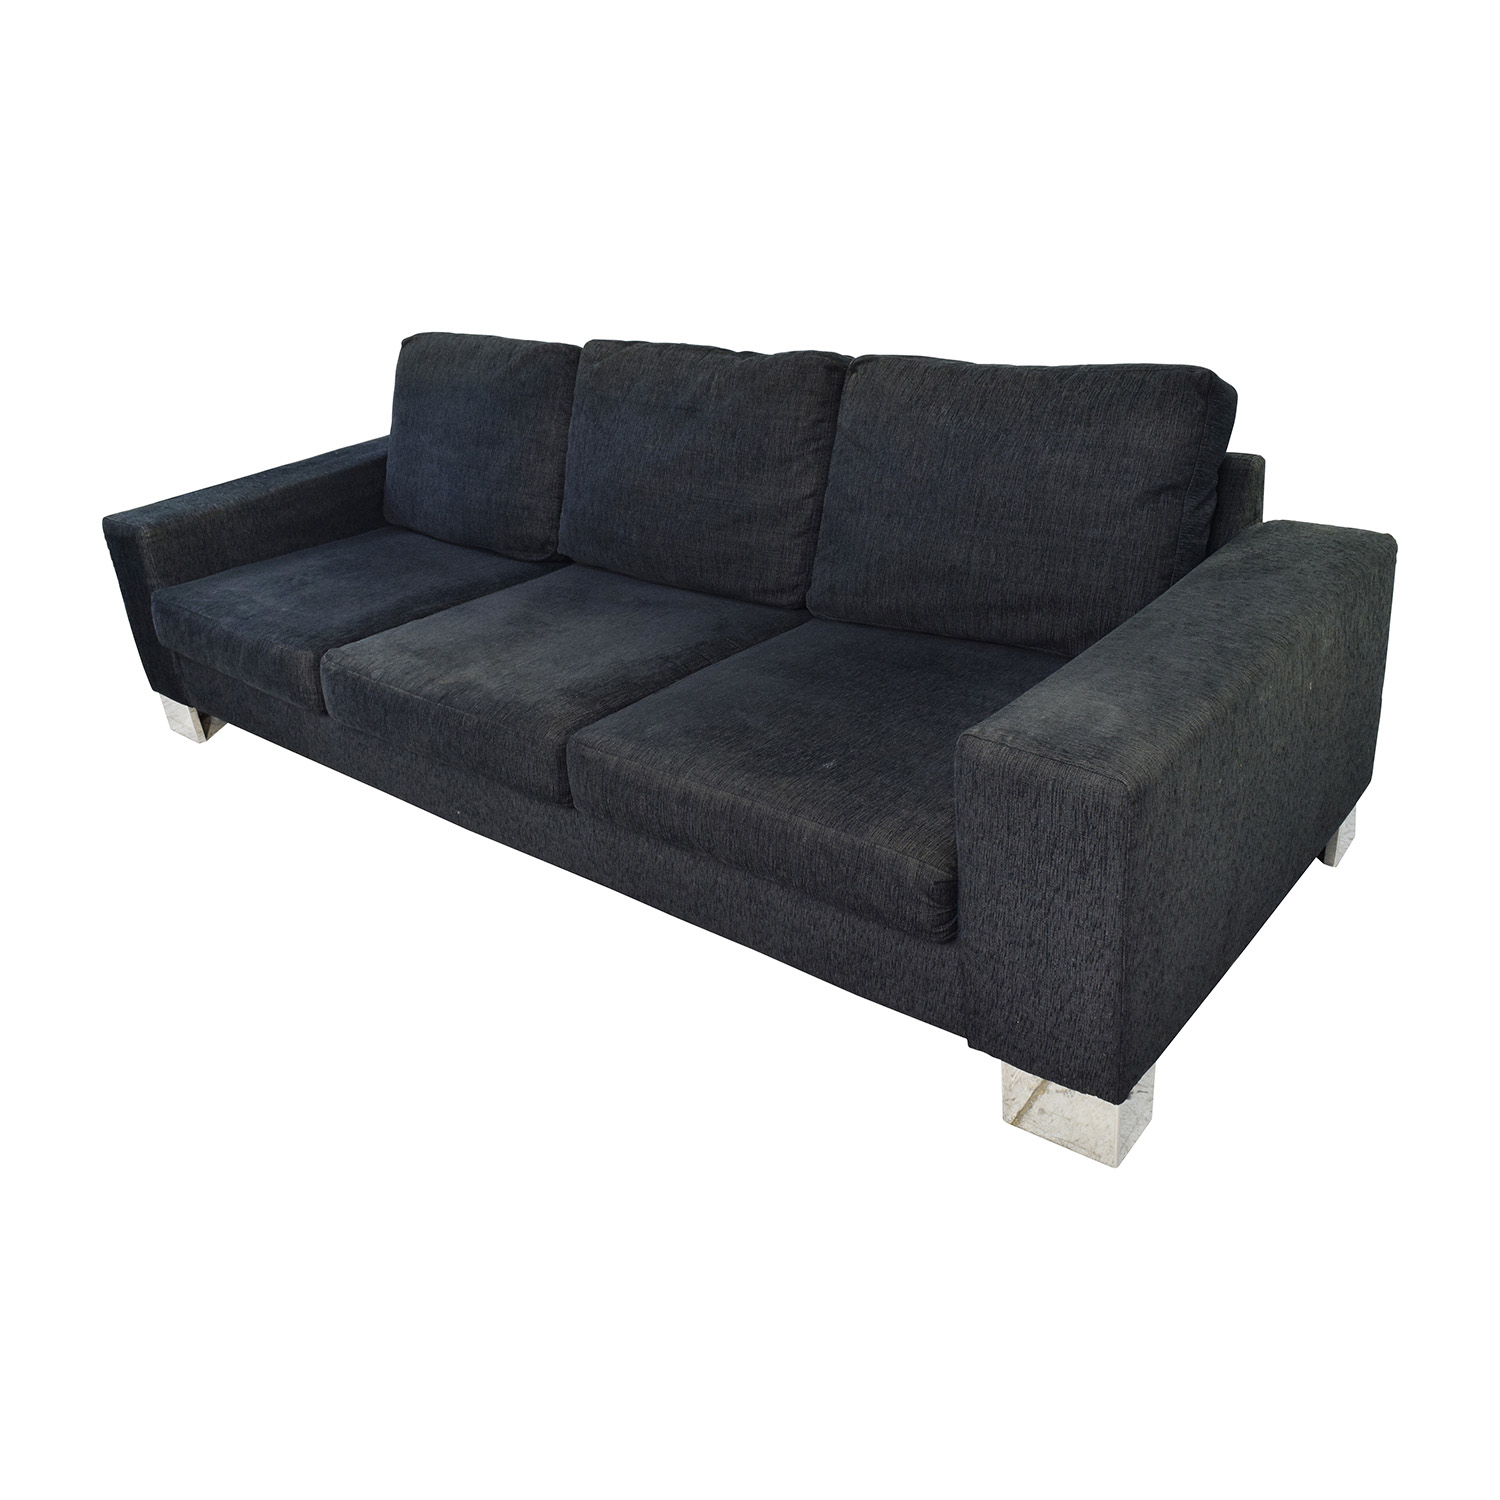 90 off boconcept boconcept cenova three seater brown sofa sofas Boconcept sofa price